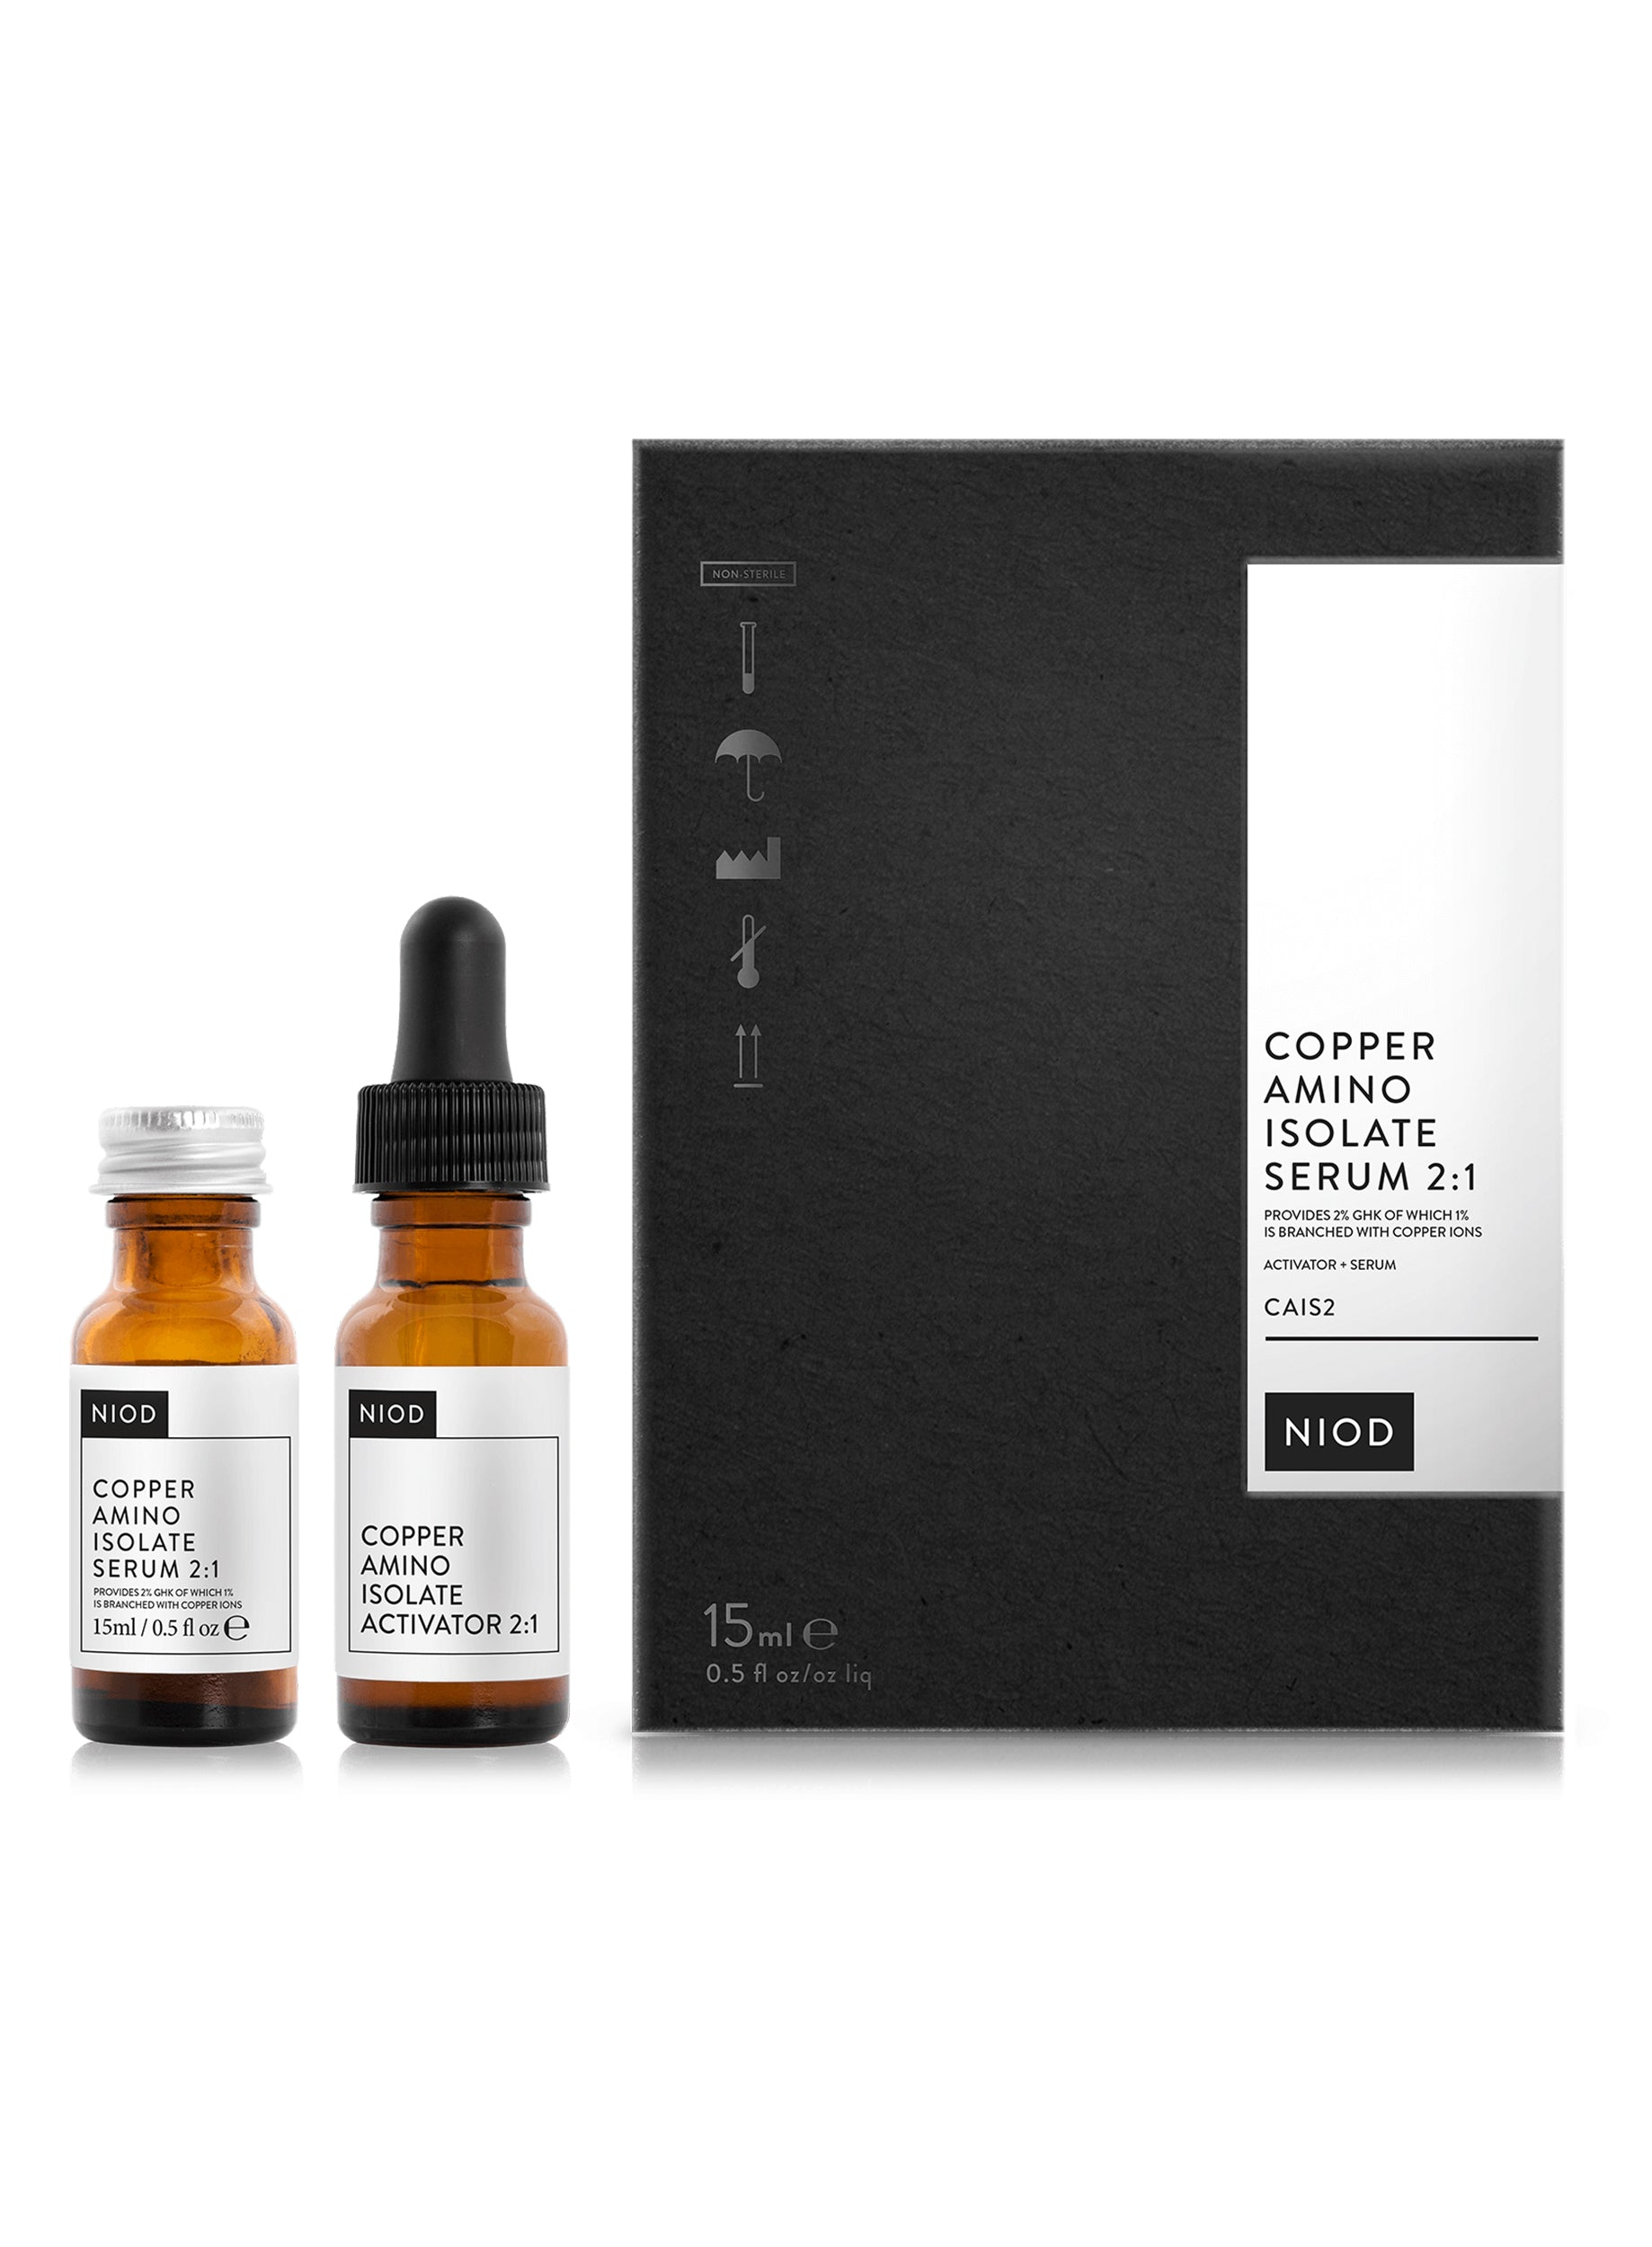 NIOD Copper Amino Isolate Serum 2:1 (CAIS2) 15ml